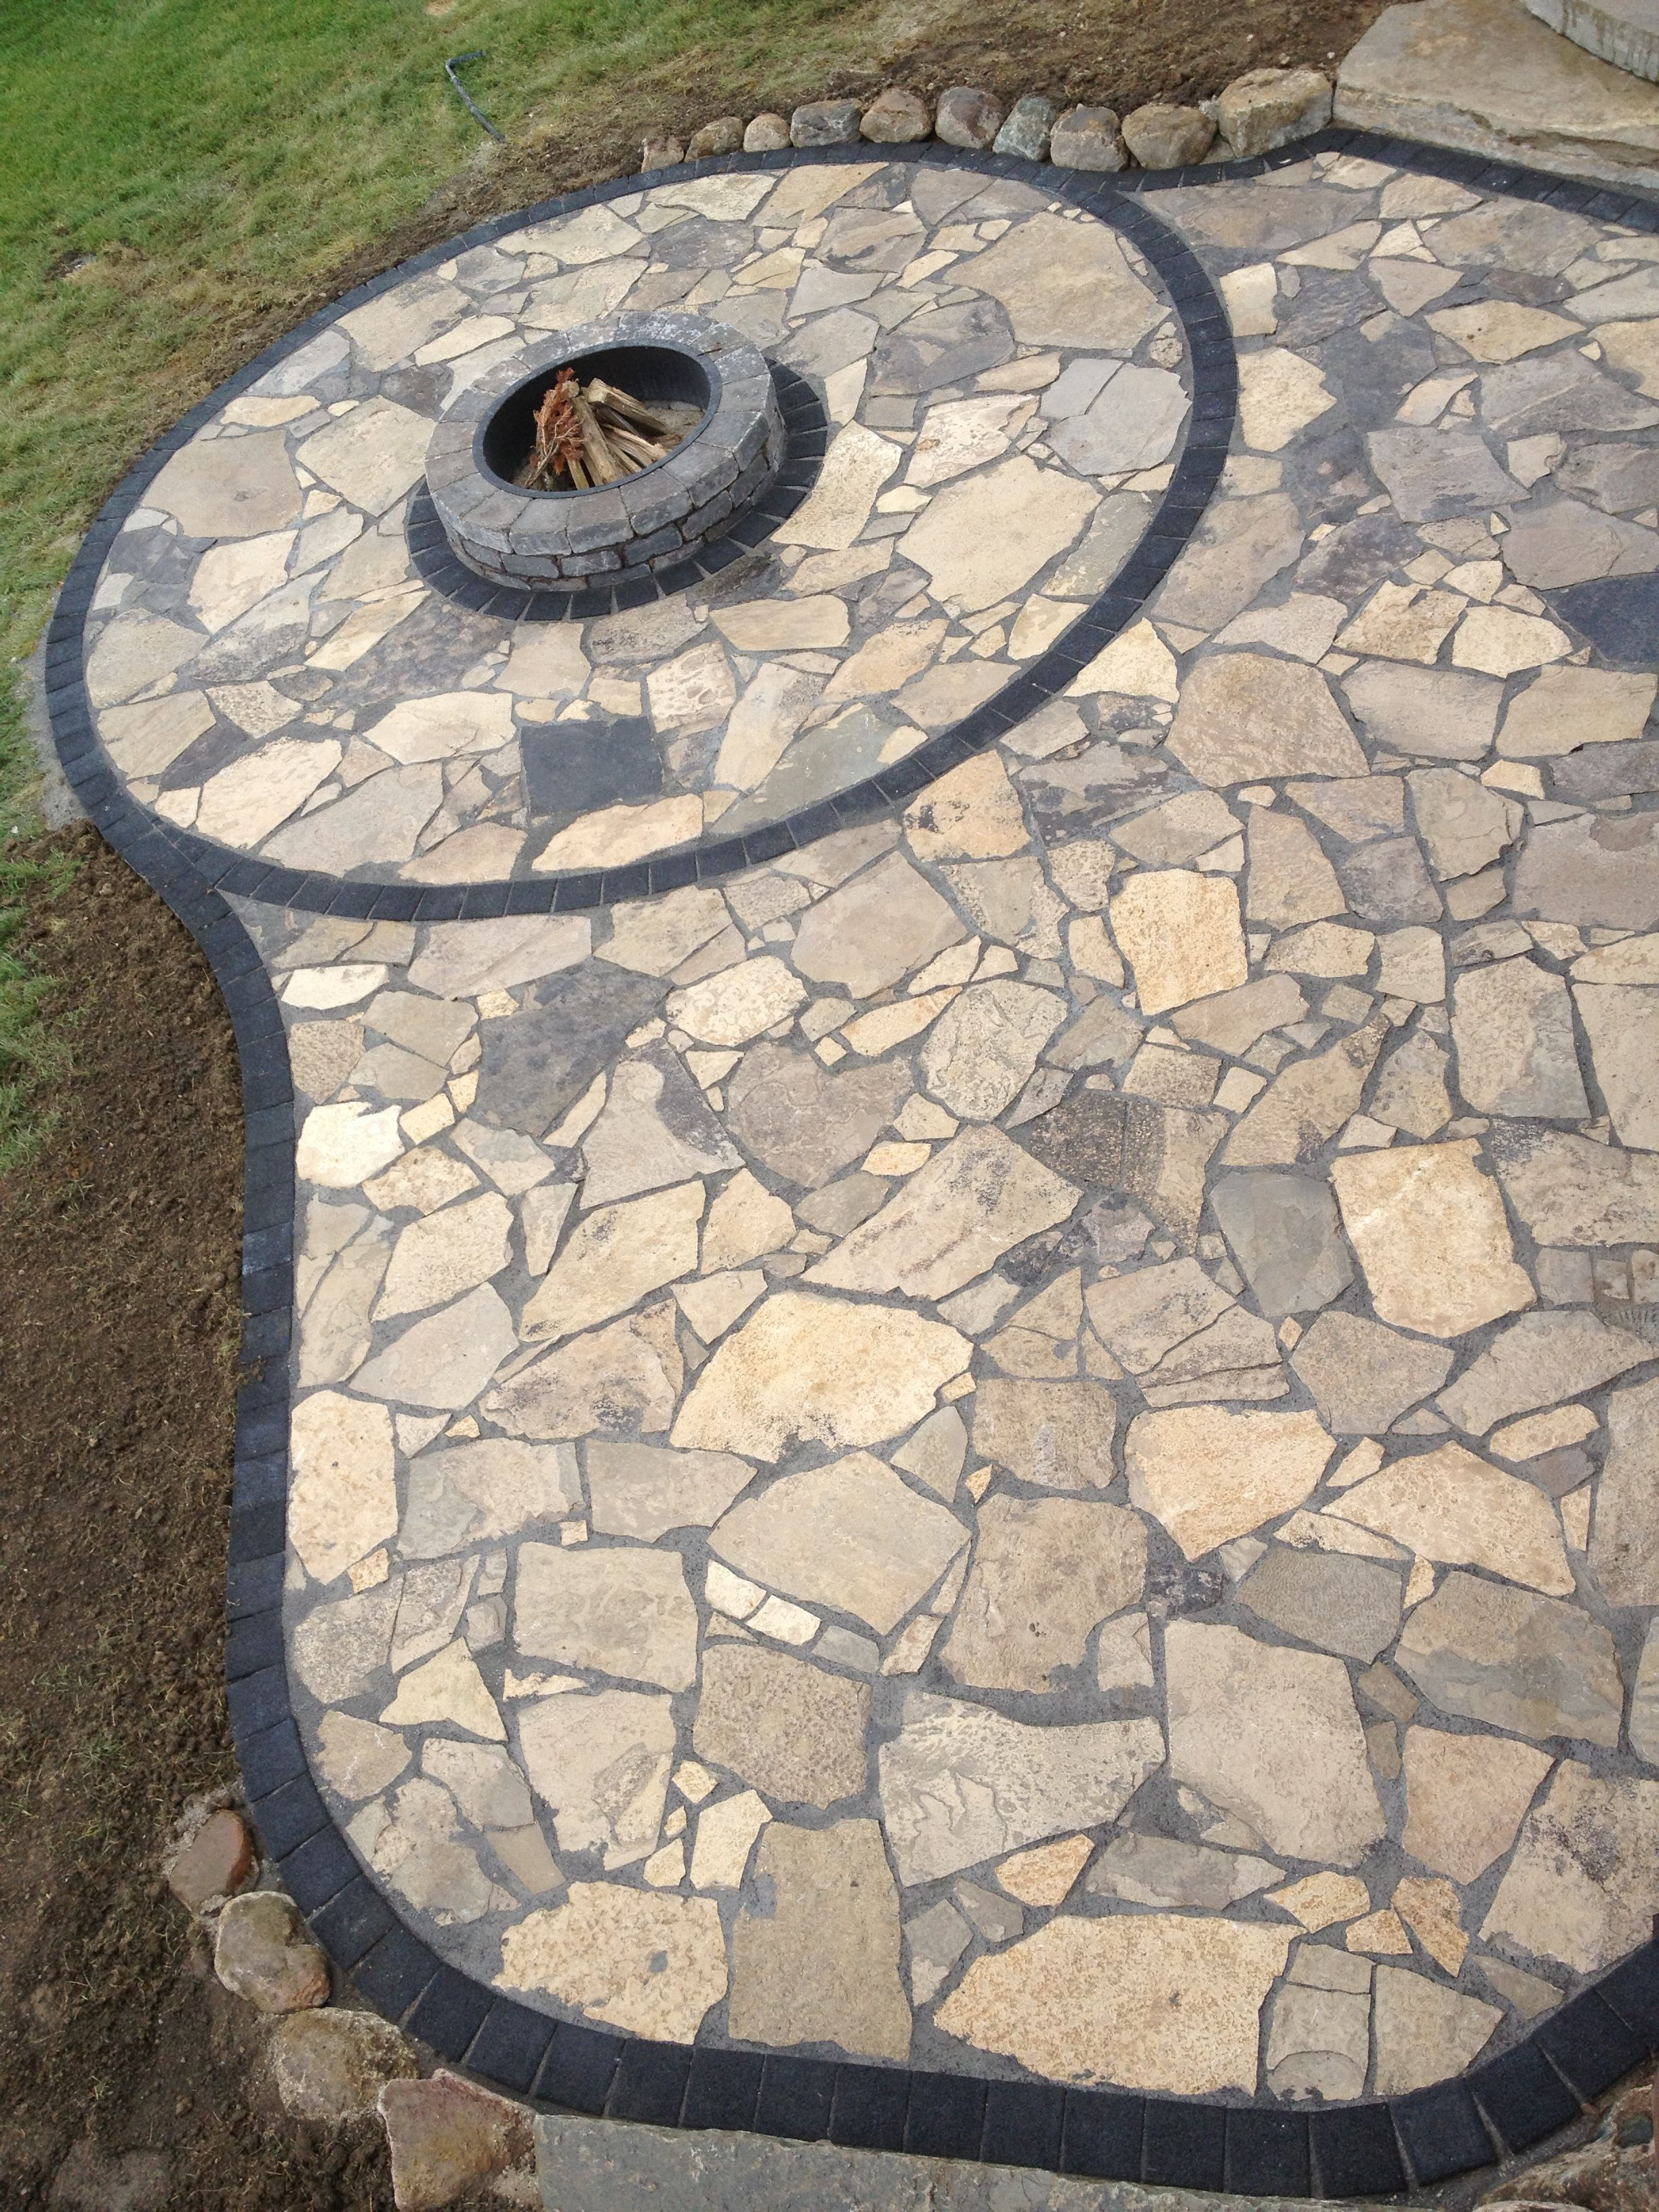 Canadian Flagstone Patio With Unilock Paver Accent Bricks. By Frank Spiker  Of All Natural Landscapes